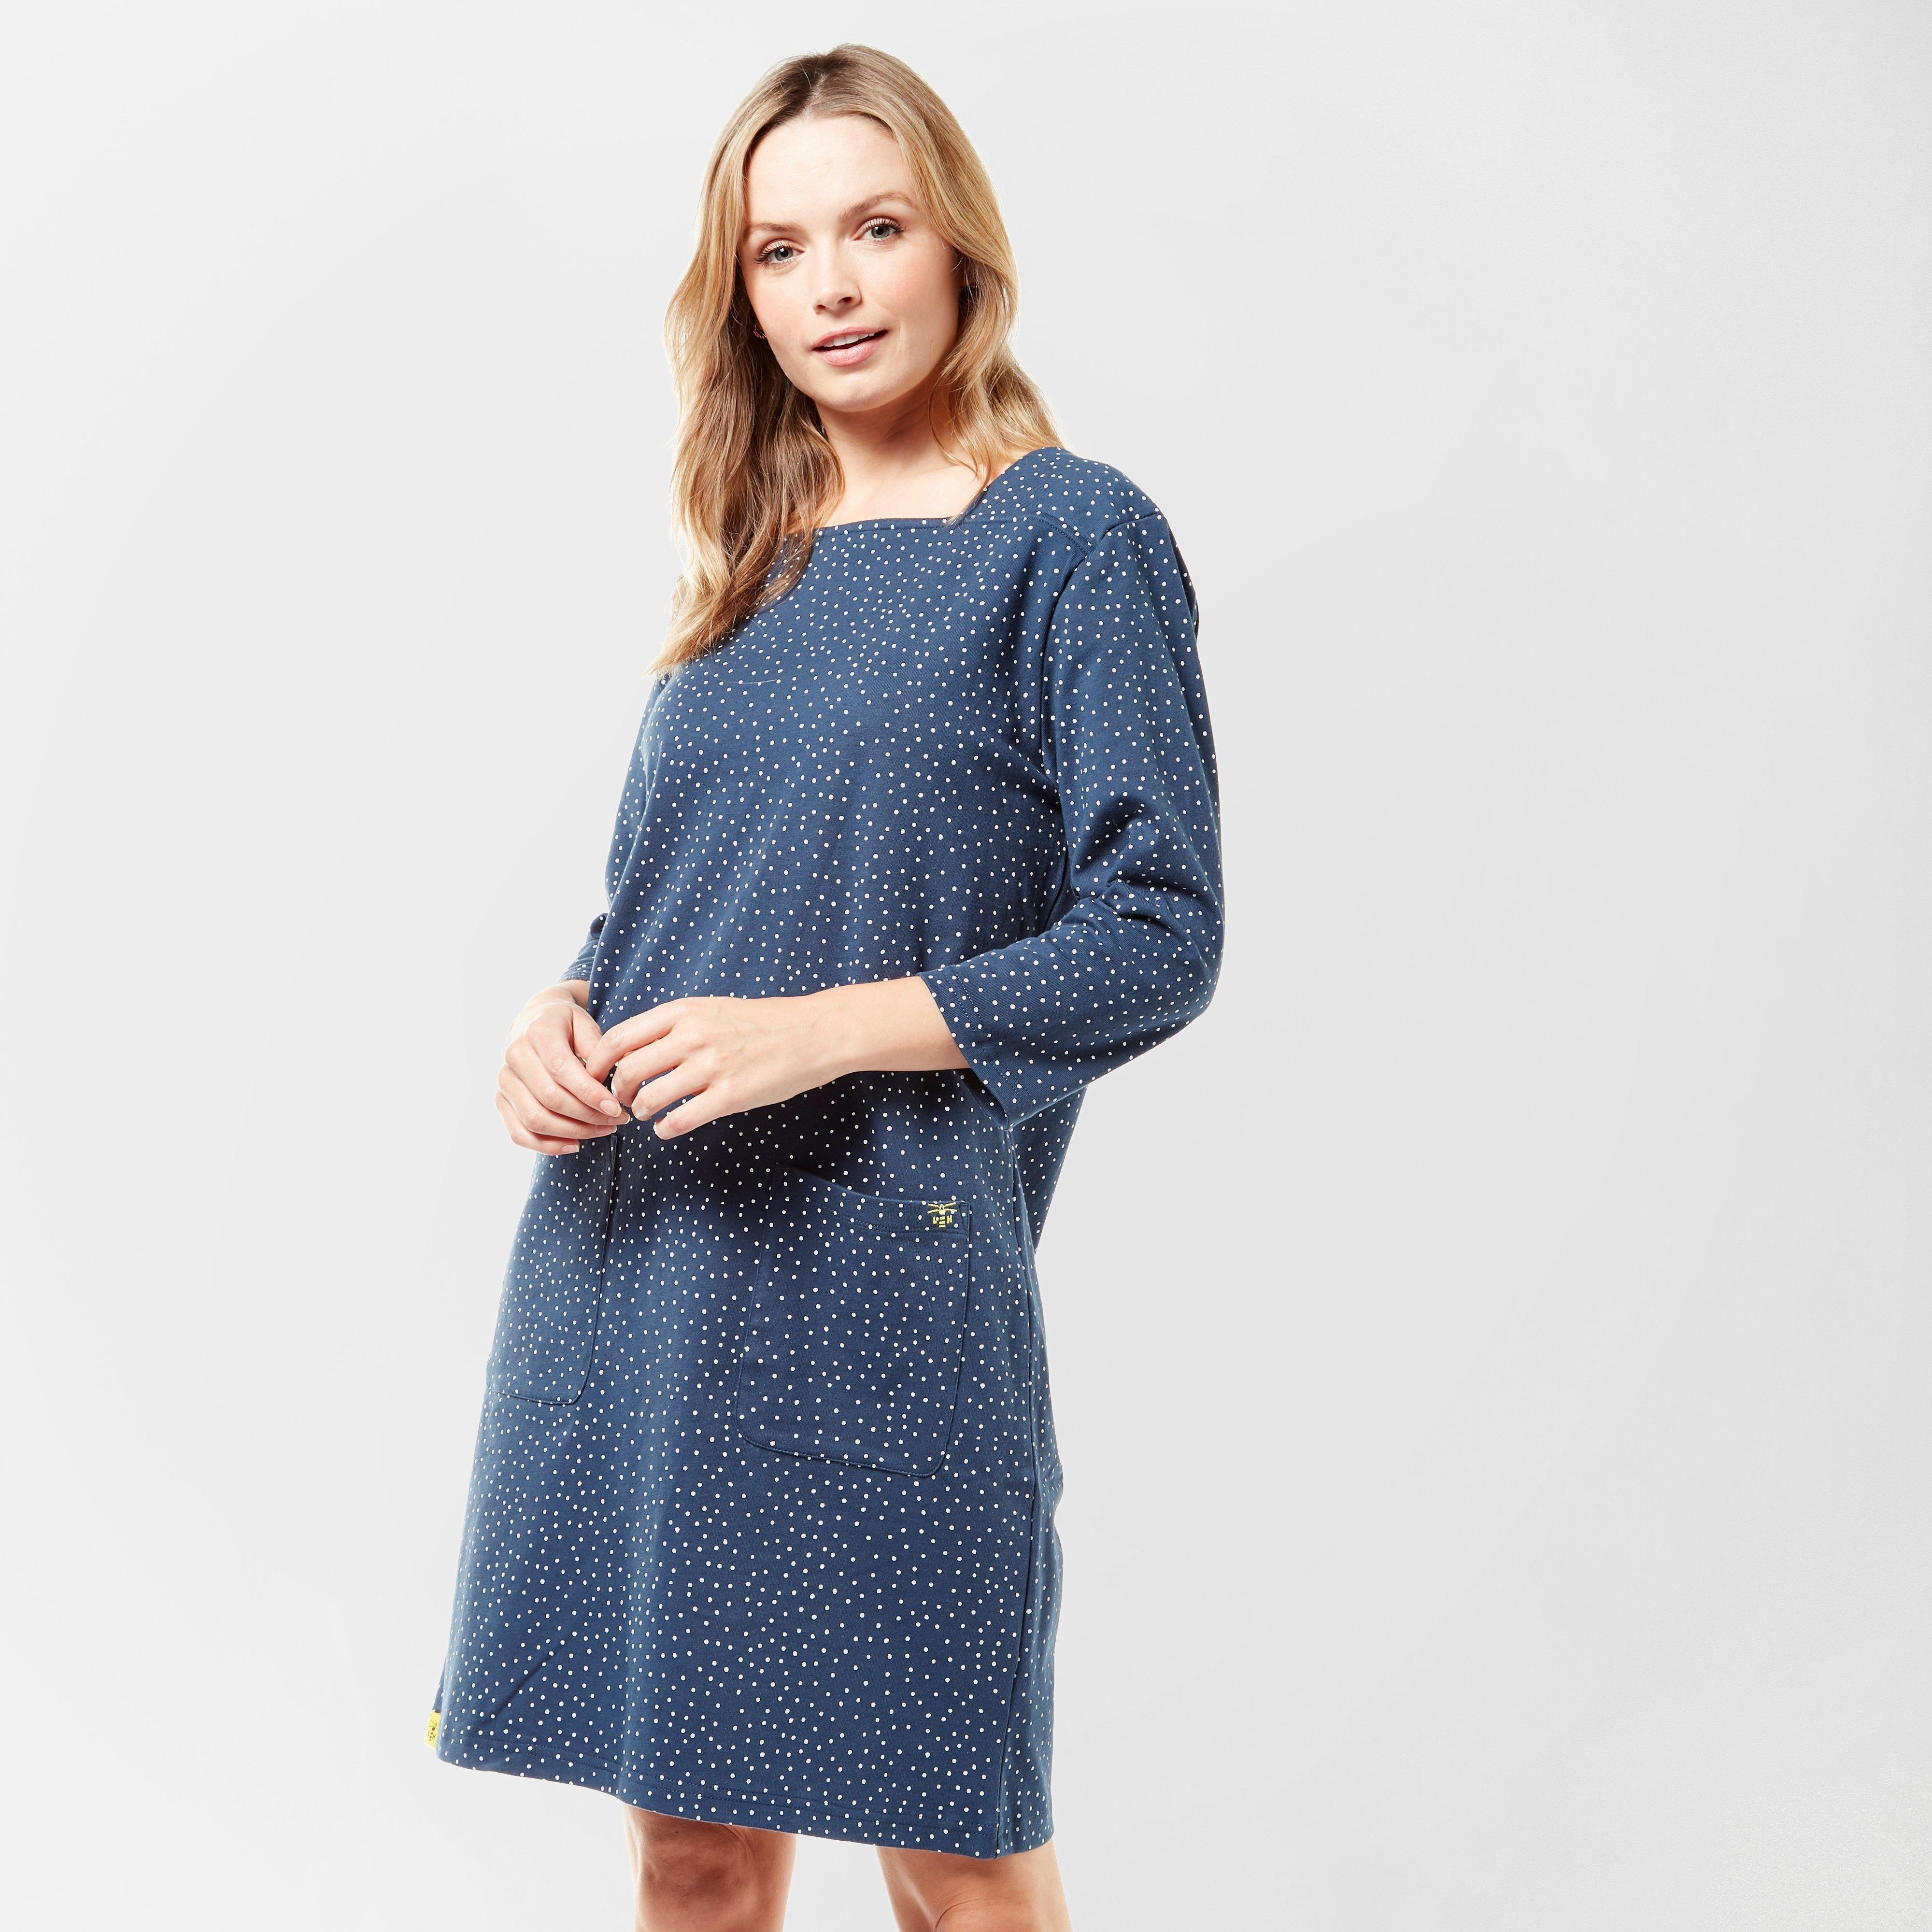 Lighthouse Women's Anabelle Dress, Navy